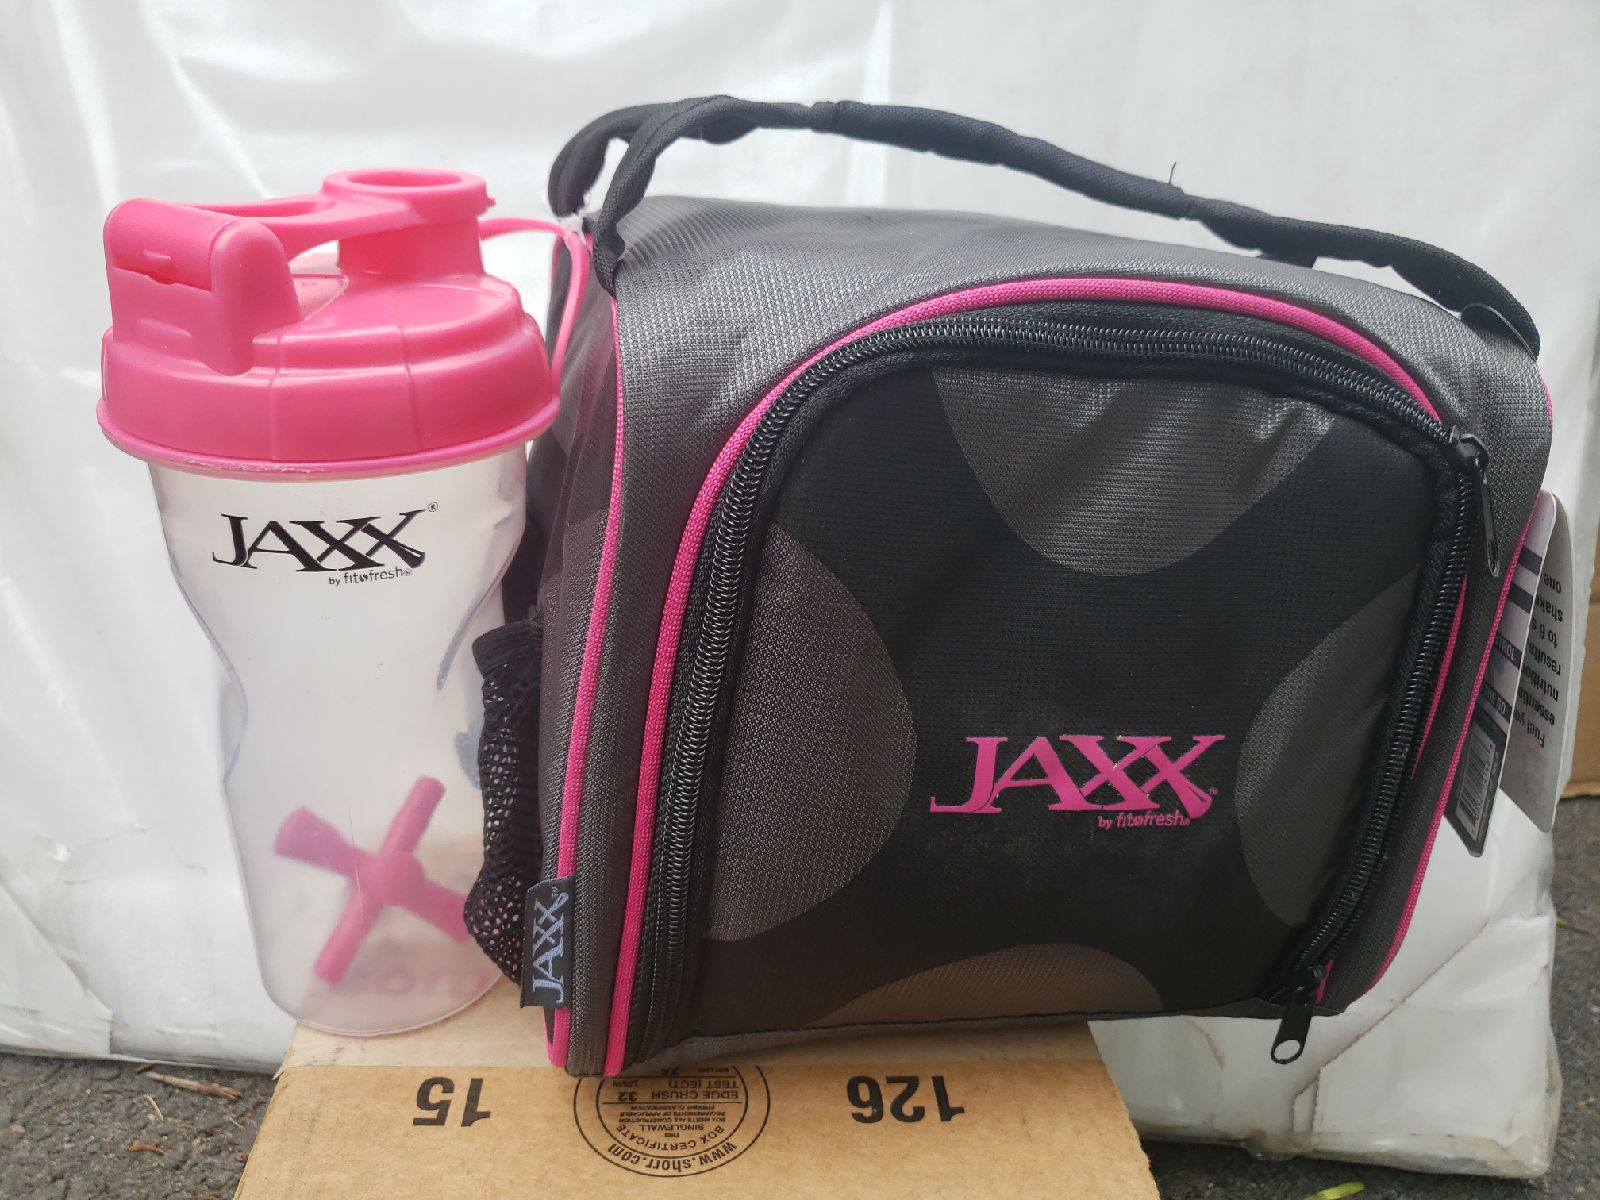 Jaxx fitpack meal portion control system